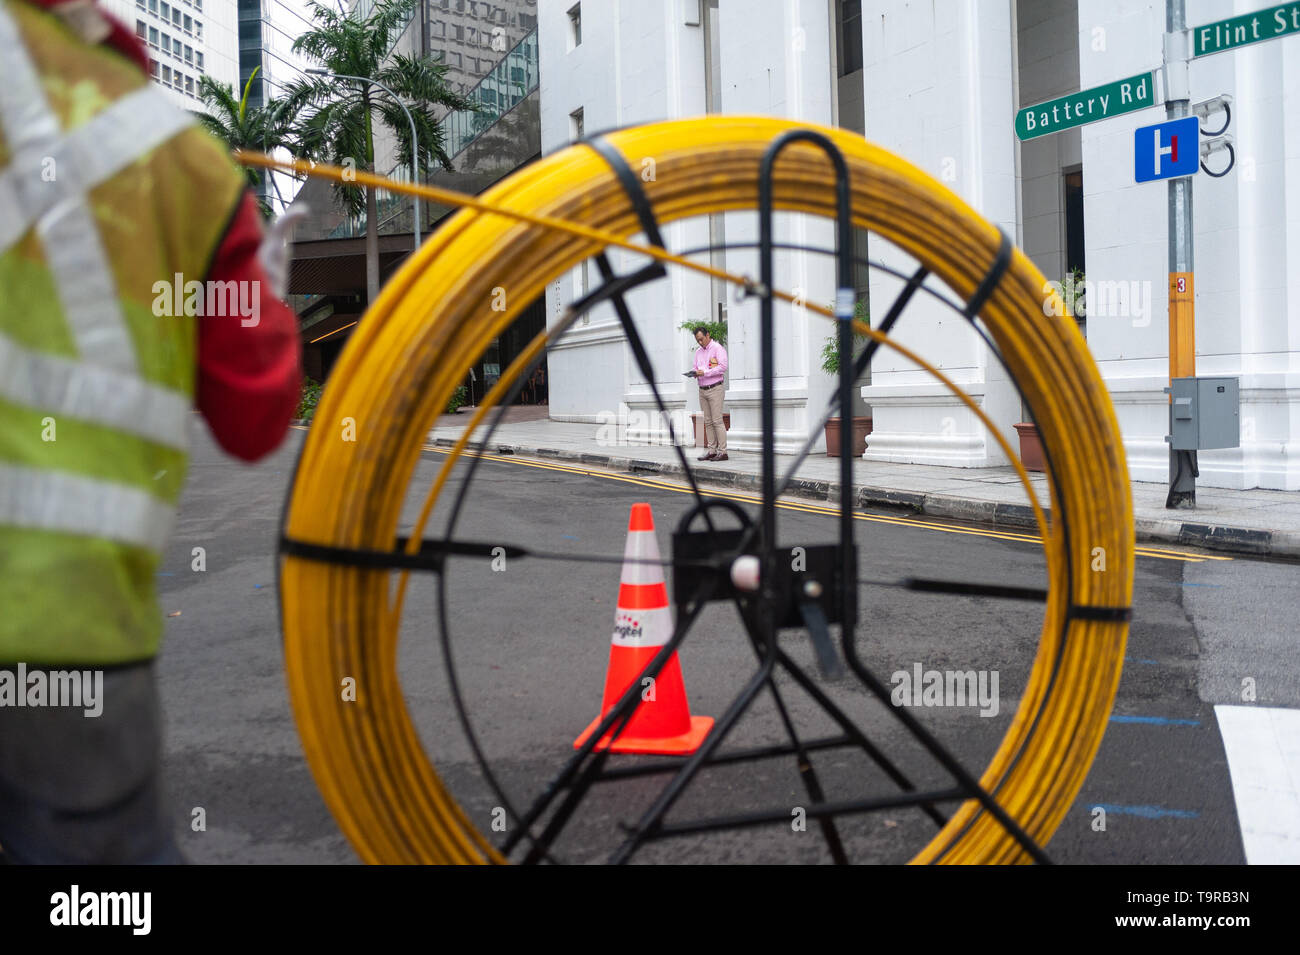 15.04.2018, Singapore, Republic of Singapore, Asia - A worker is laying cables on a road in the central business district. - Stock Image